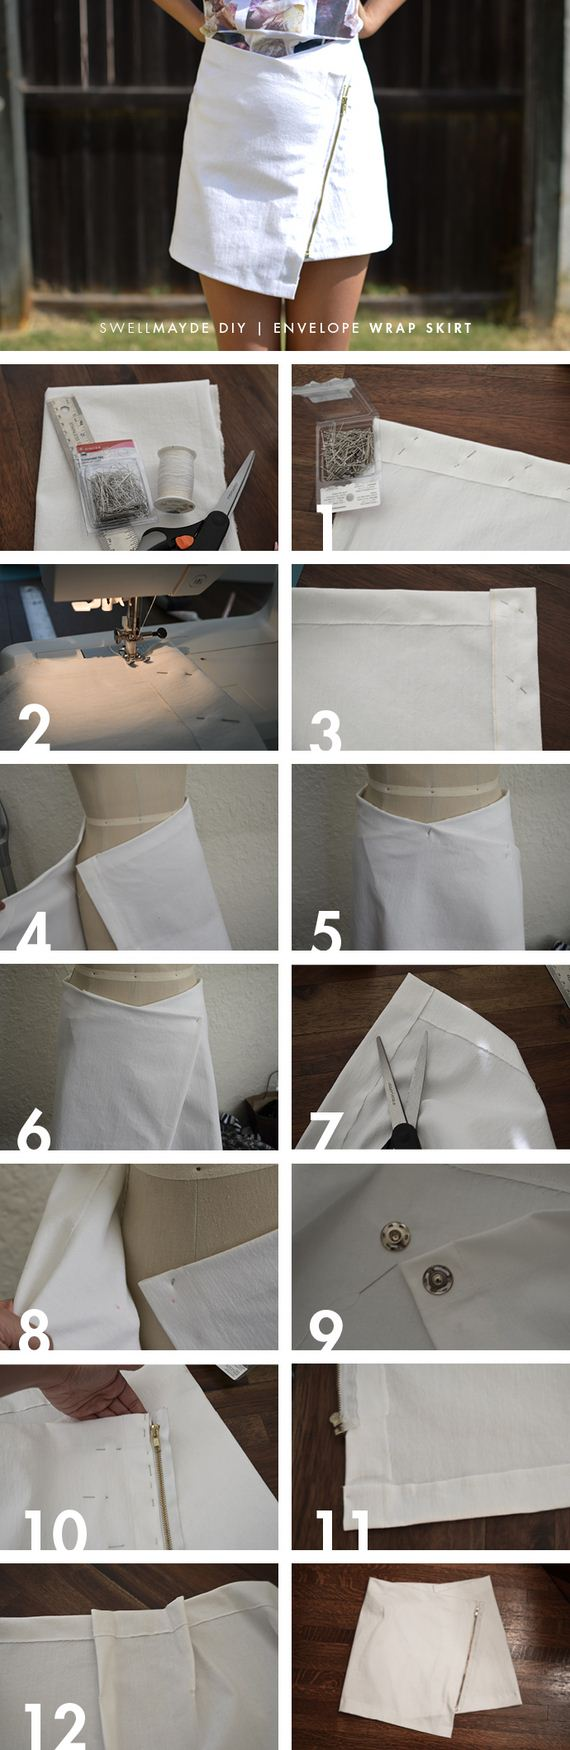 07-diy-clothes-ideas